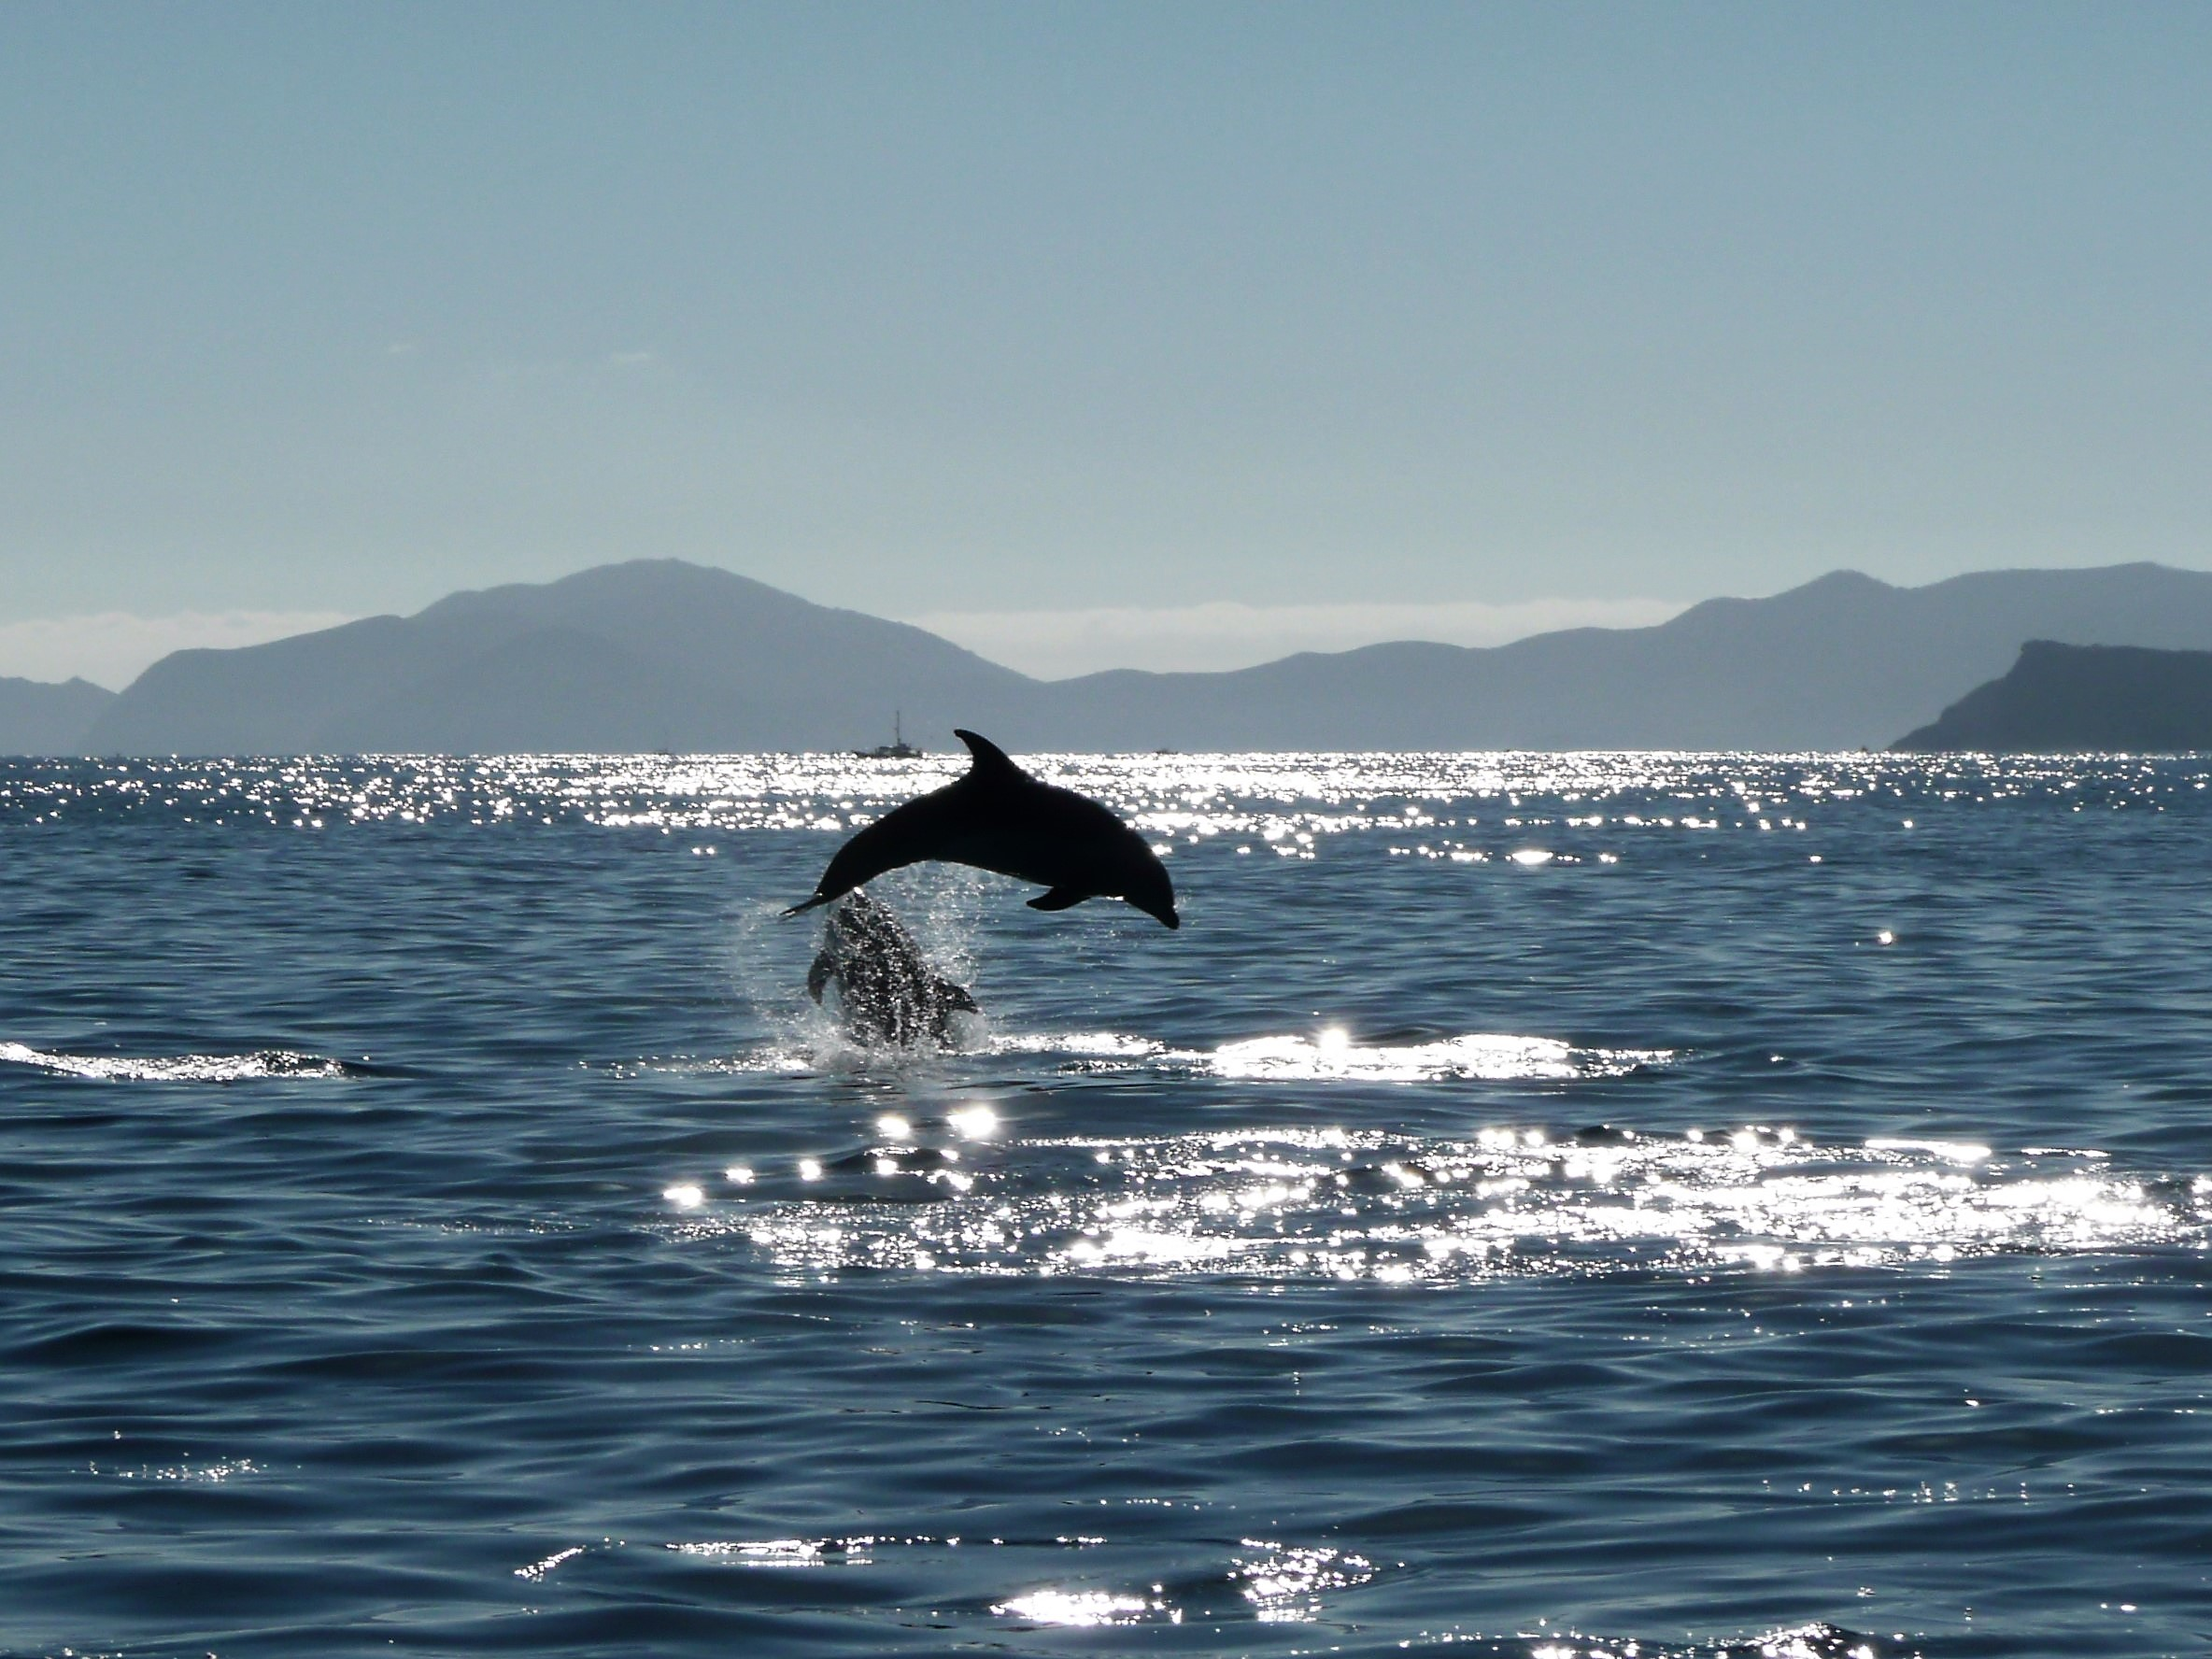 Dolphin cruises in the Bay of Islands